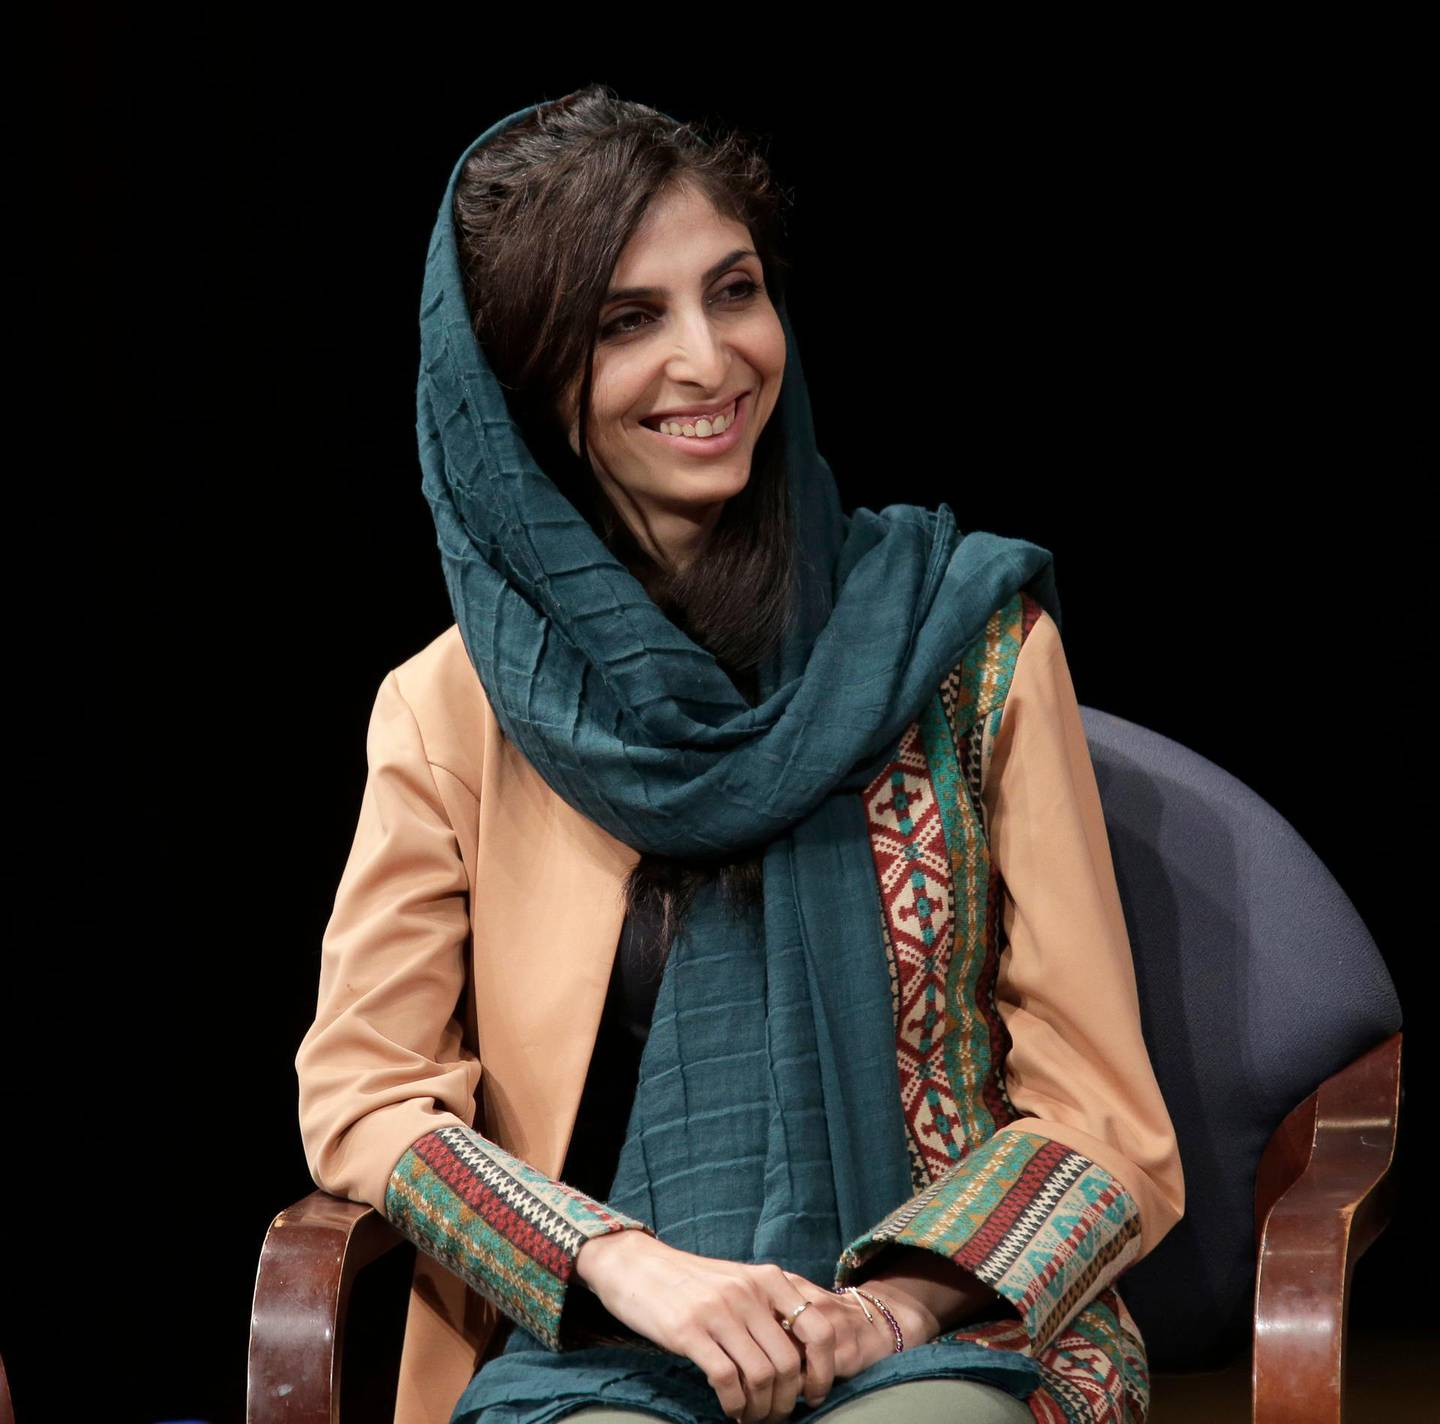 CEO of the Afghan Citadel Software Company Roya Mahboob participates in an event in New York, Tuesday, Oct. 9, 2018. (AP Photo/Seth Wenig)